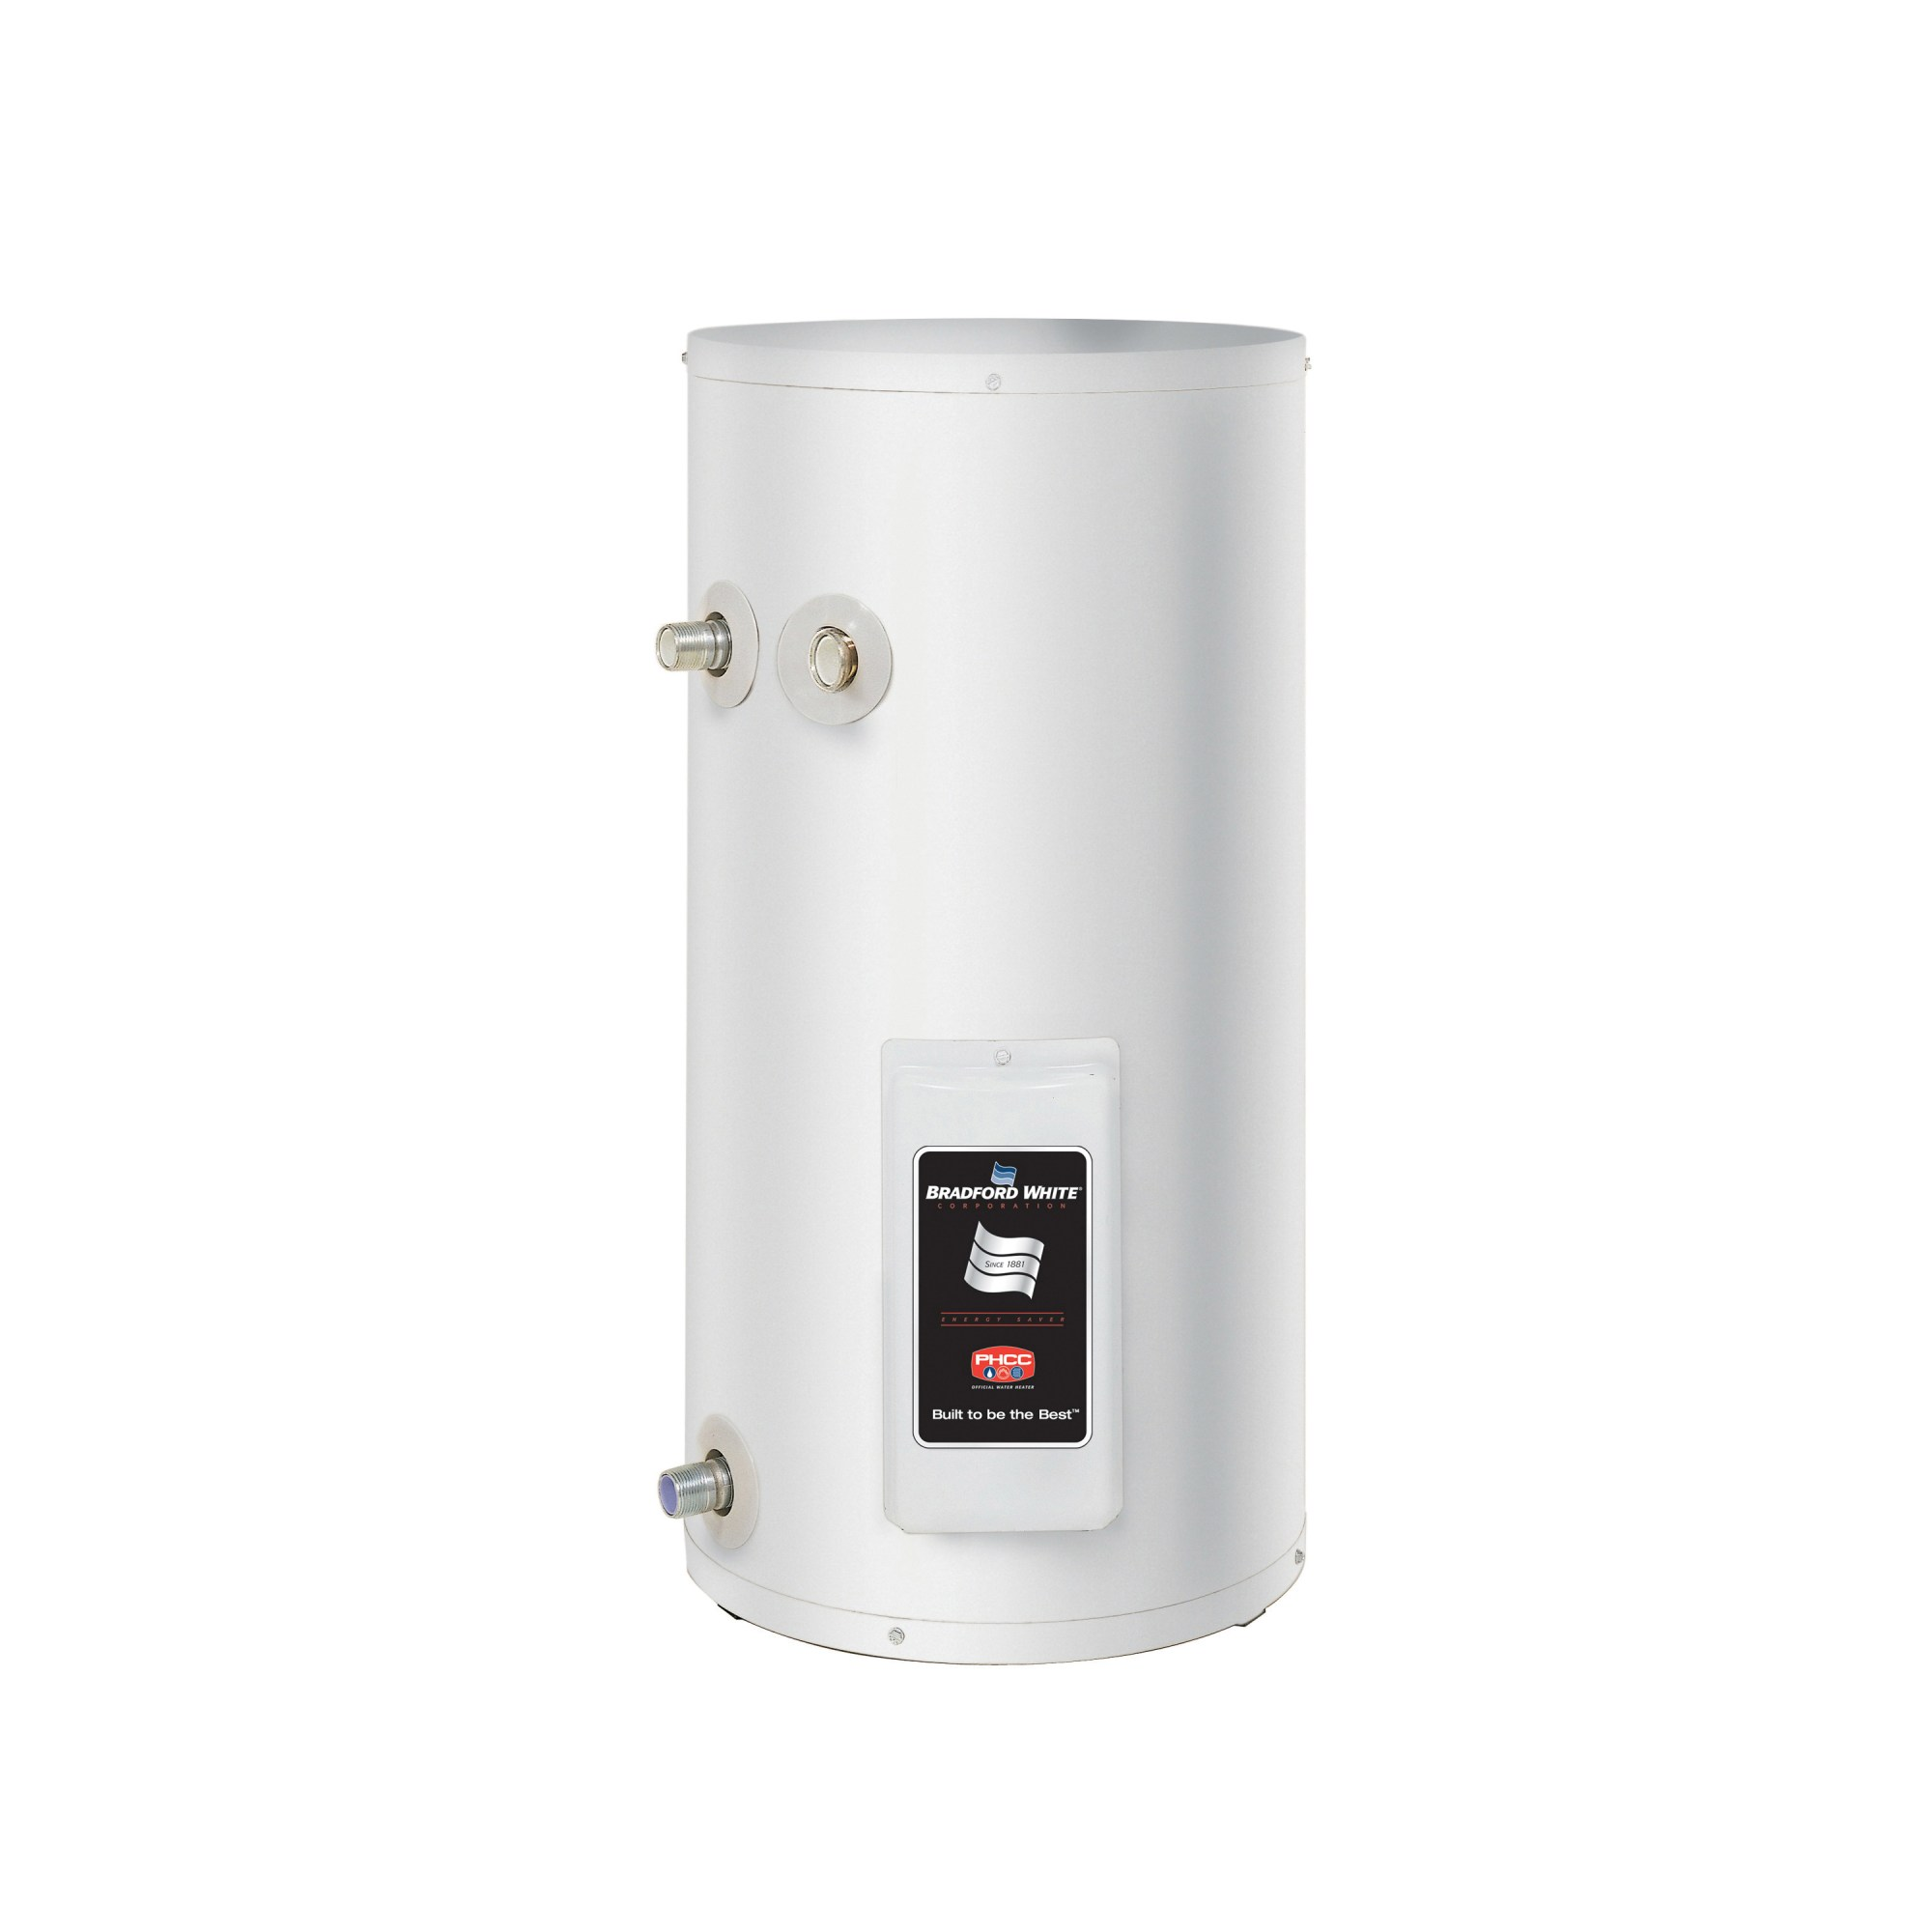 hight resolution of bradford white 12 gal electric water heater energy saver